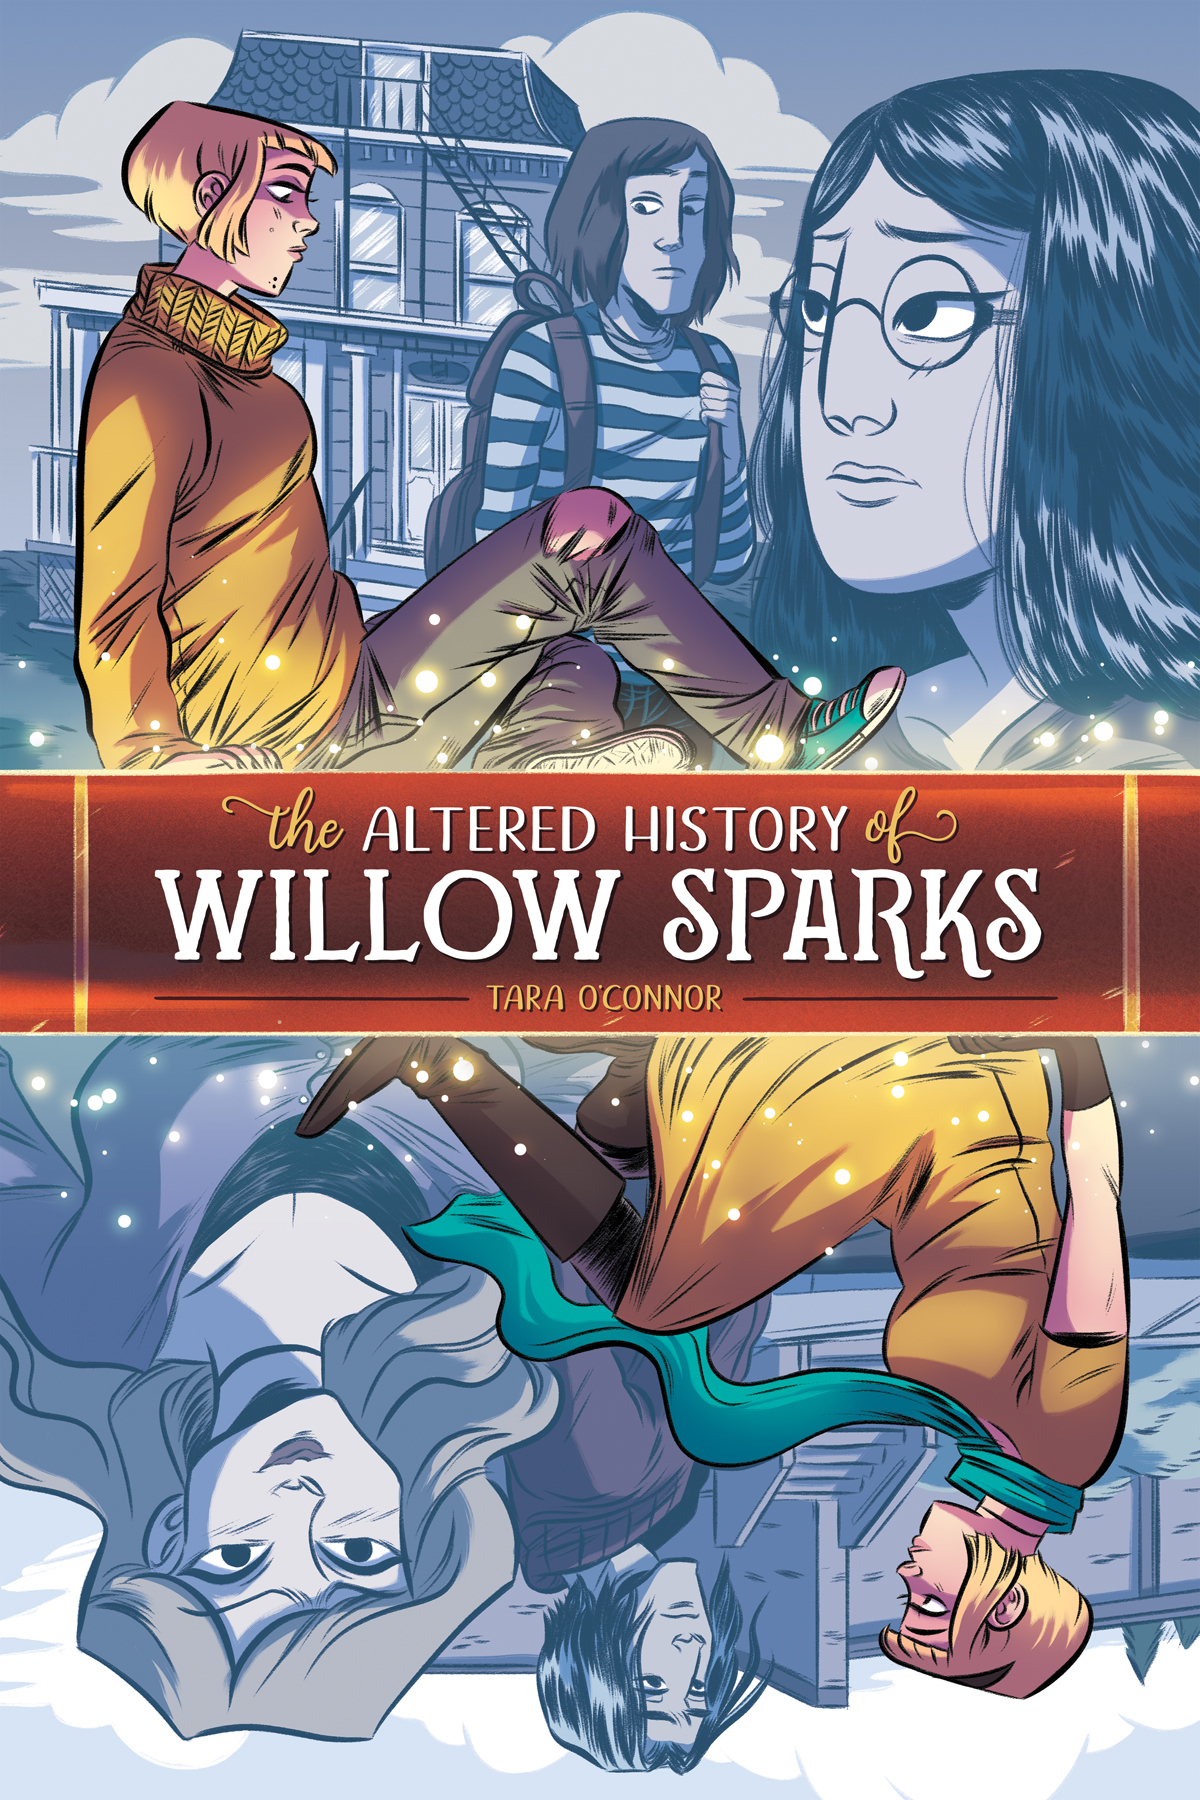 The Altered History of Willow Sparks